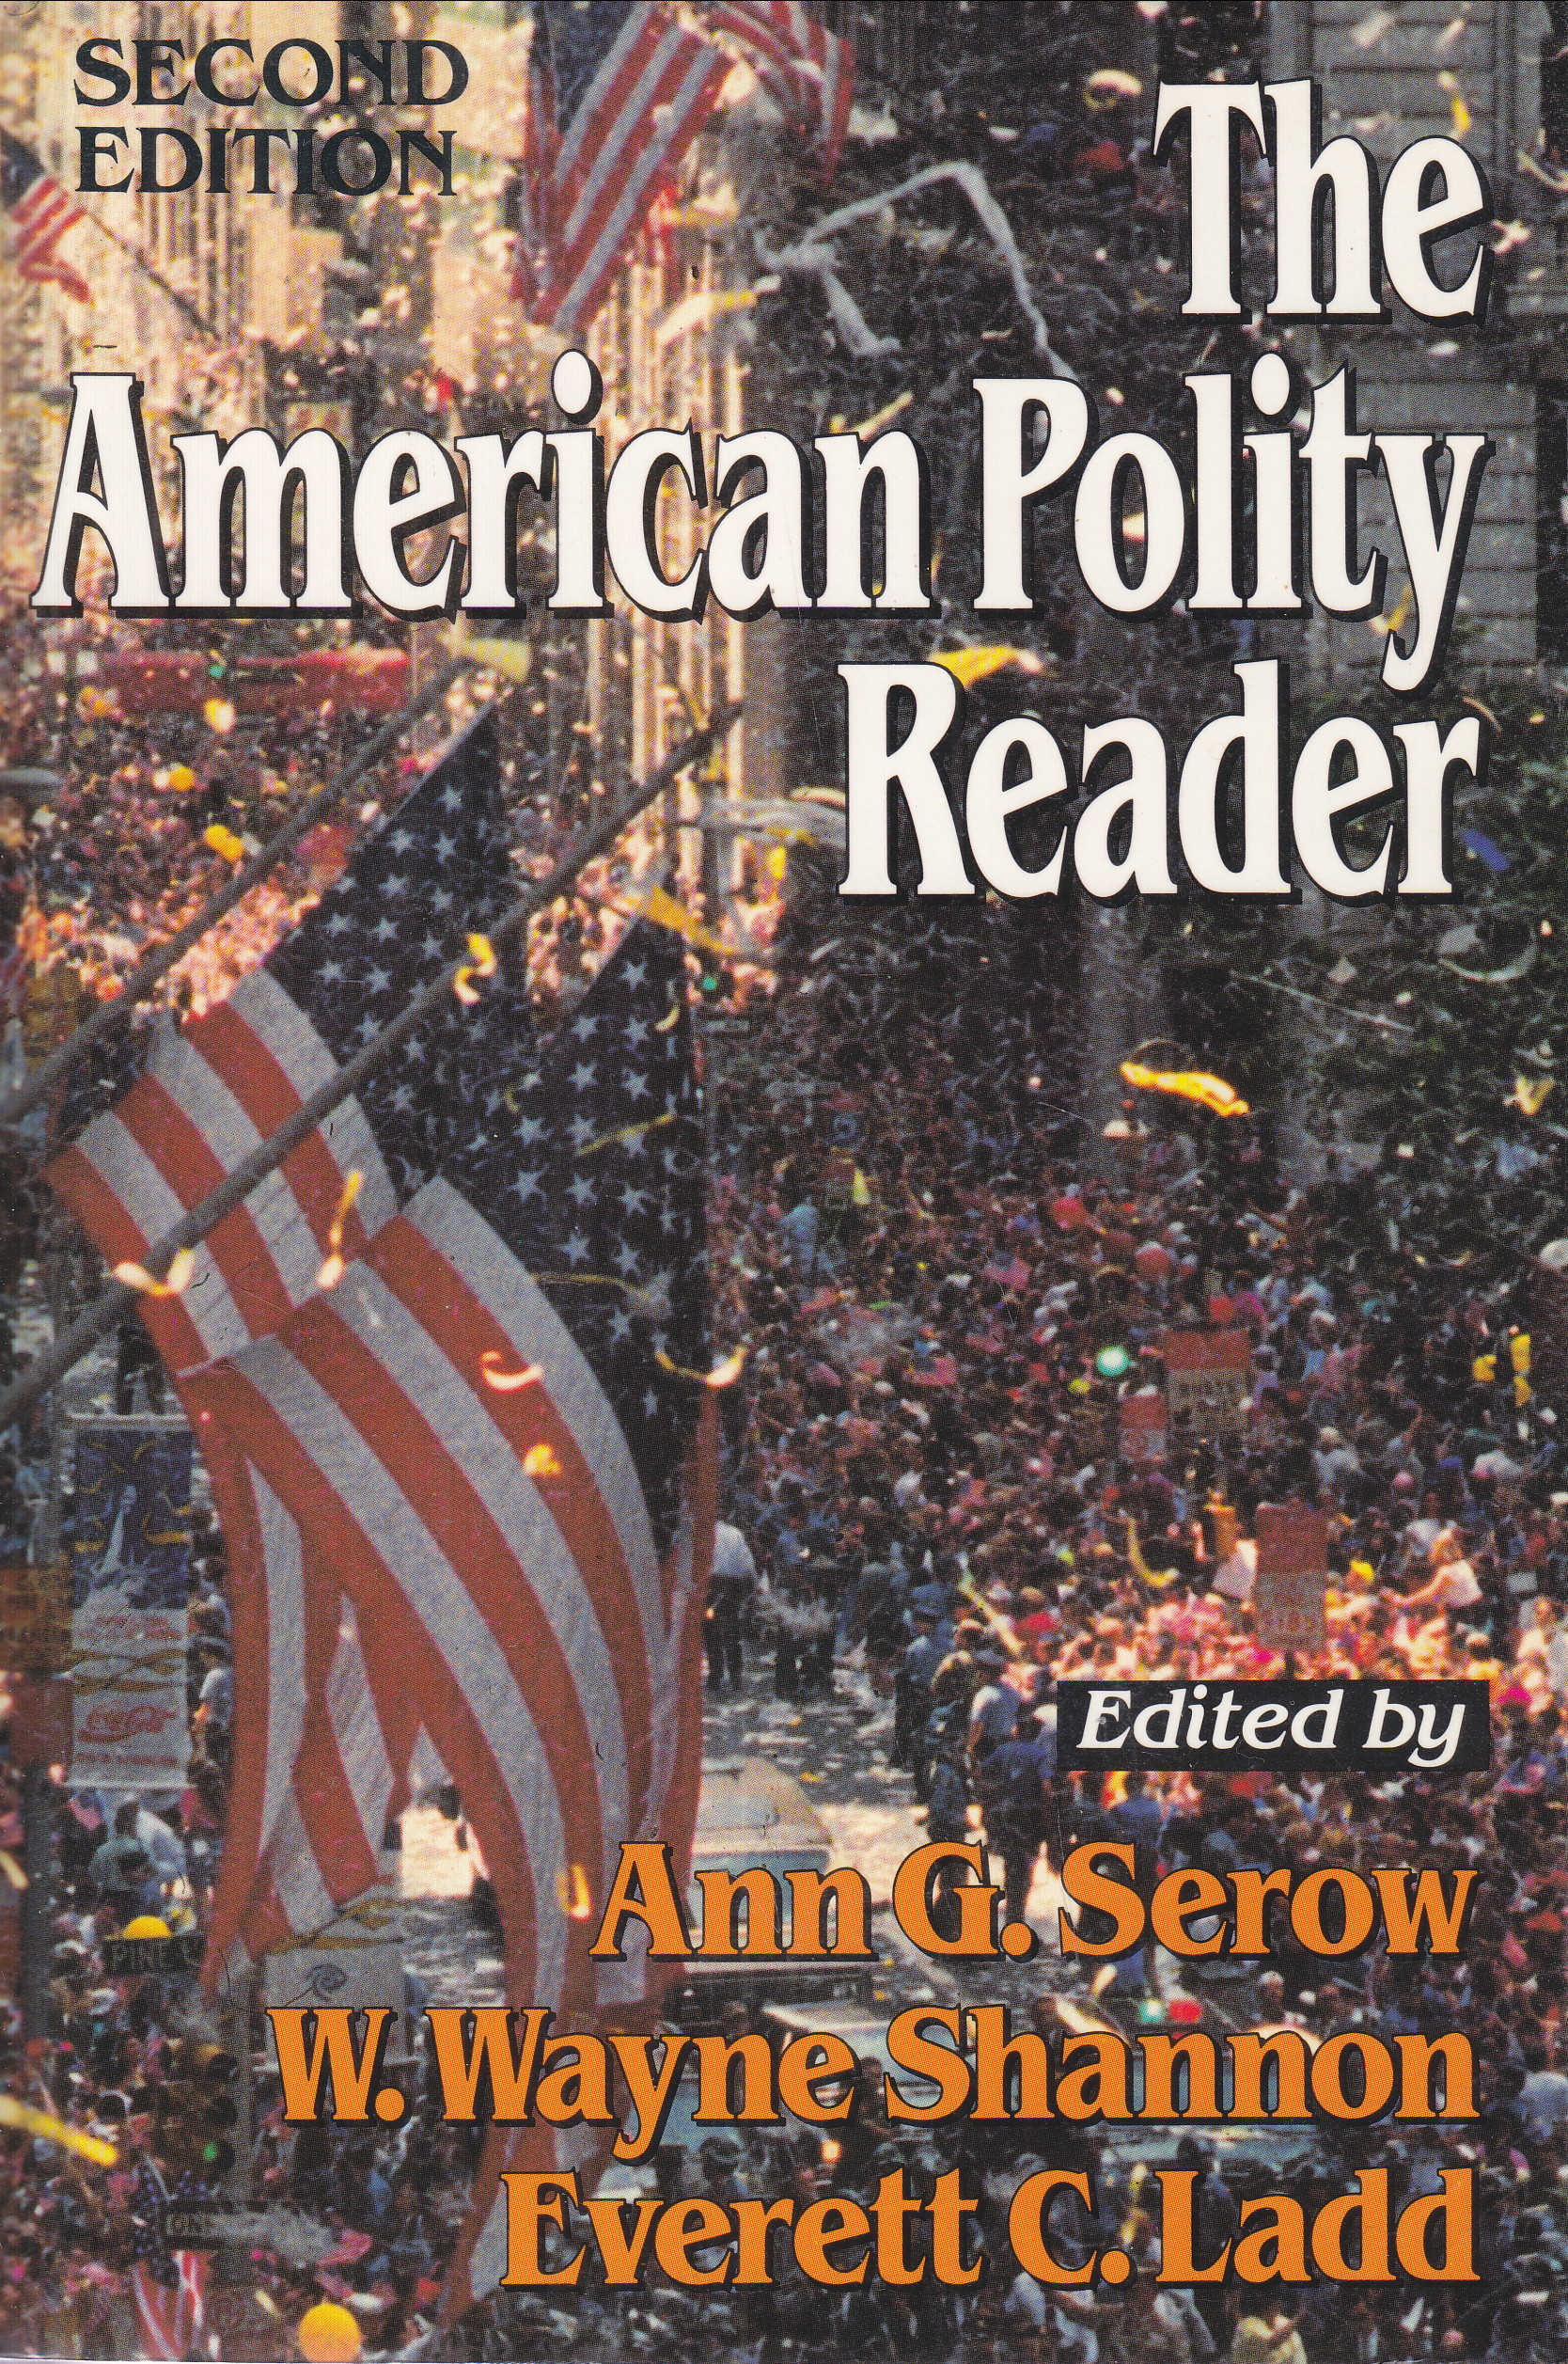 Image for American Polity Reader:  second edition